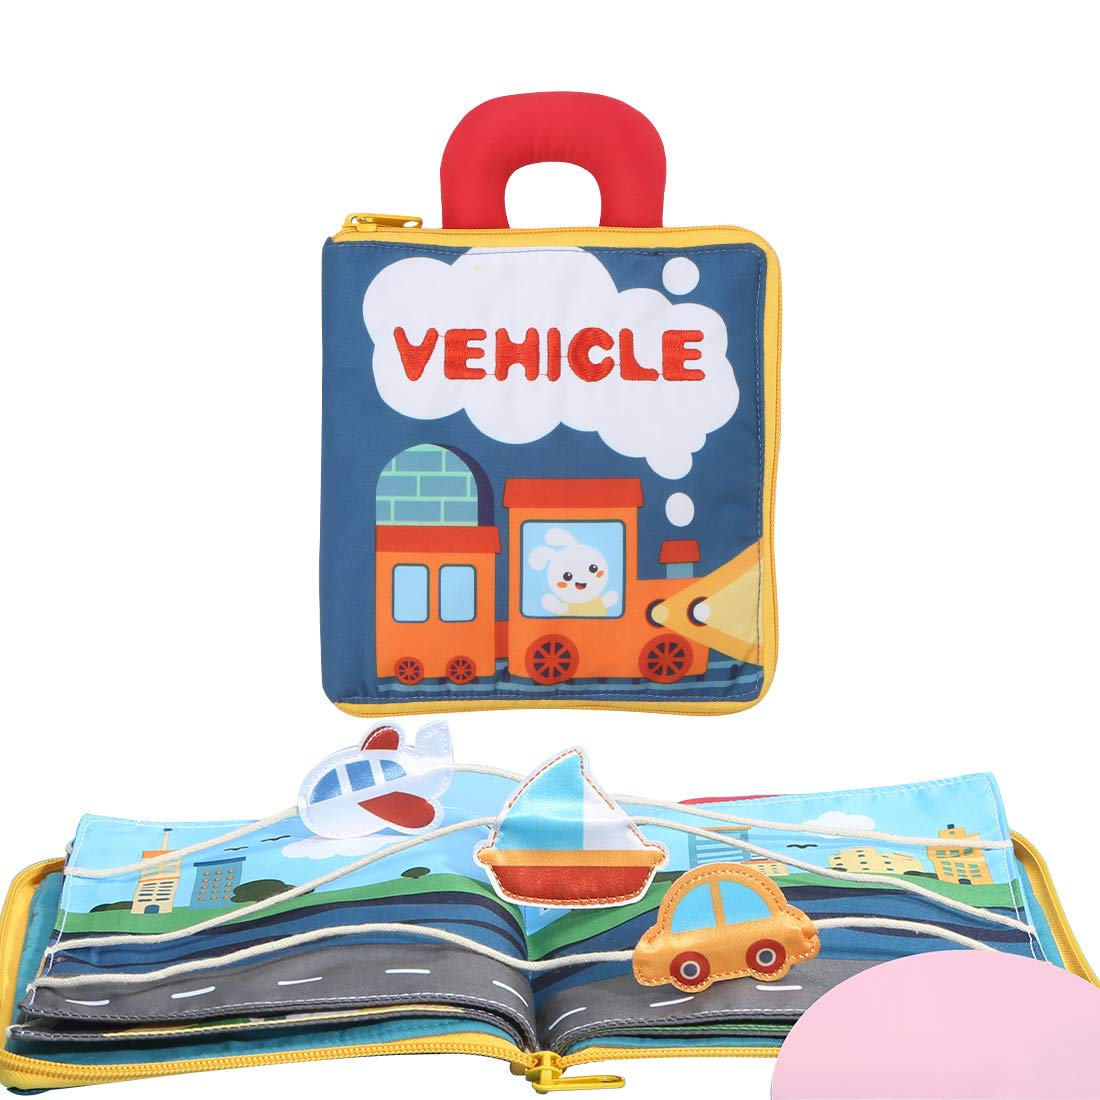 beiens 9 Theme My Quite Books, Soft Cloth Books with Mirror Fun Interactive Activity Baby Sensory Books, First Year Touch and Feel Early Education Toys Shower Gifts for Infants Babies Boys and Girls